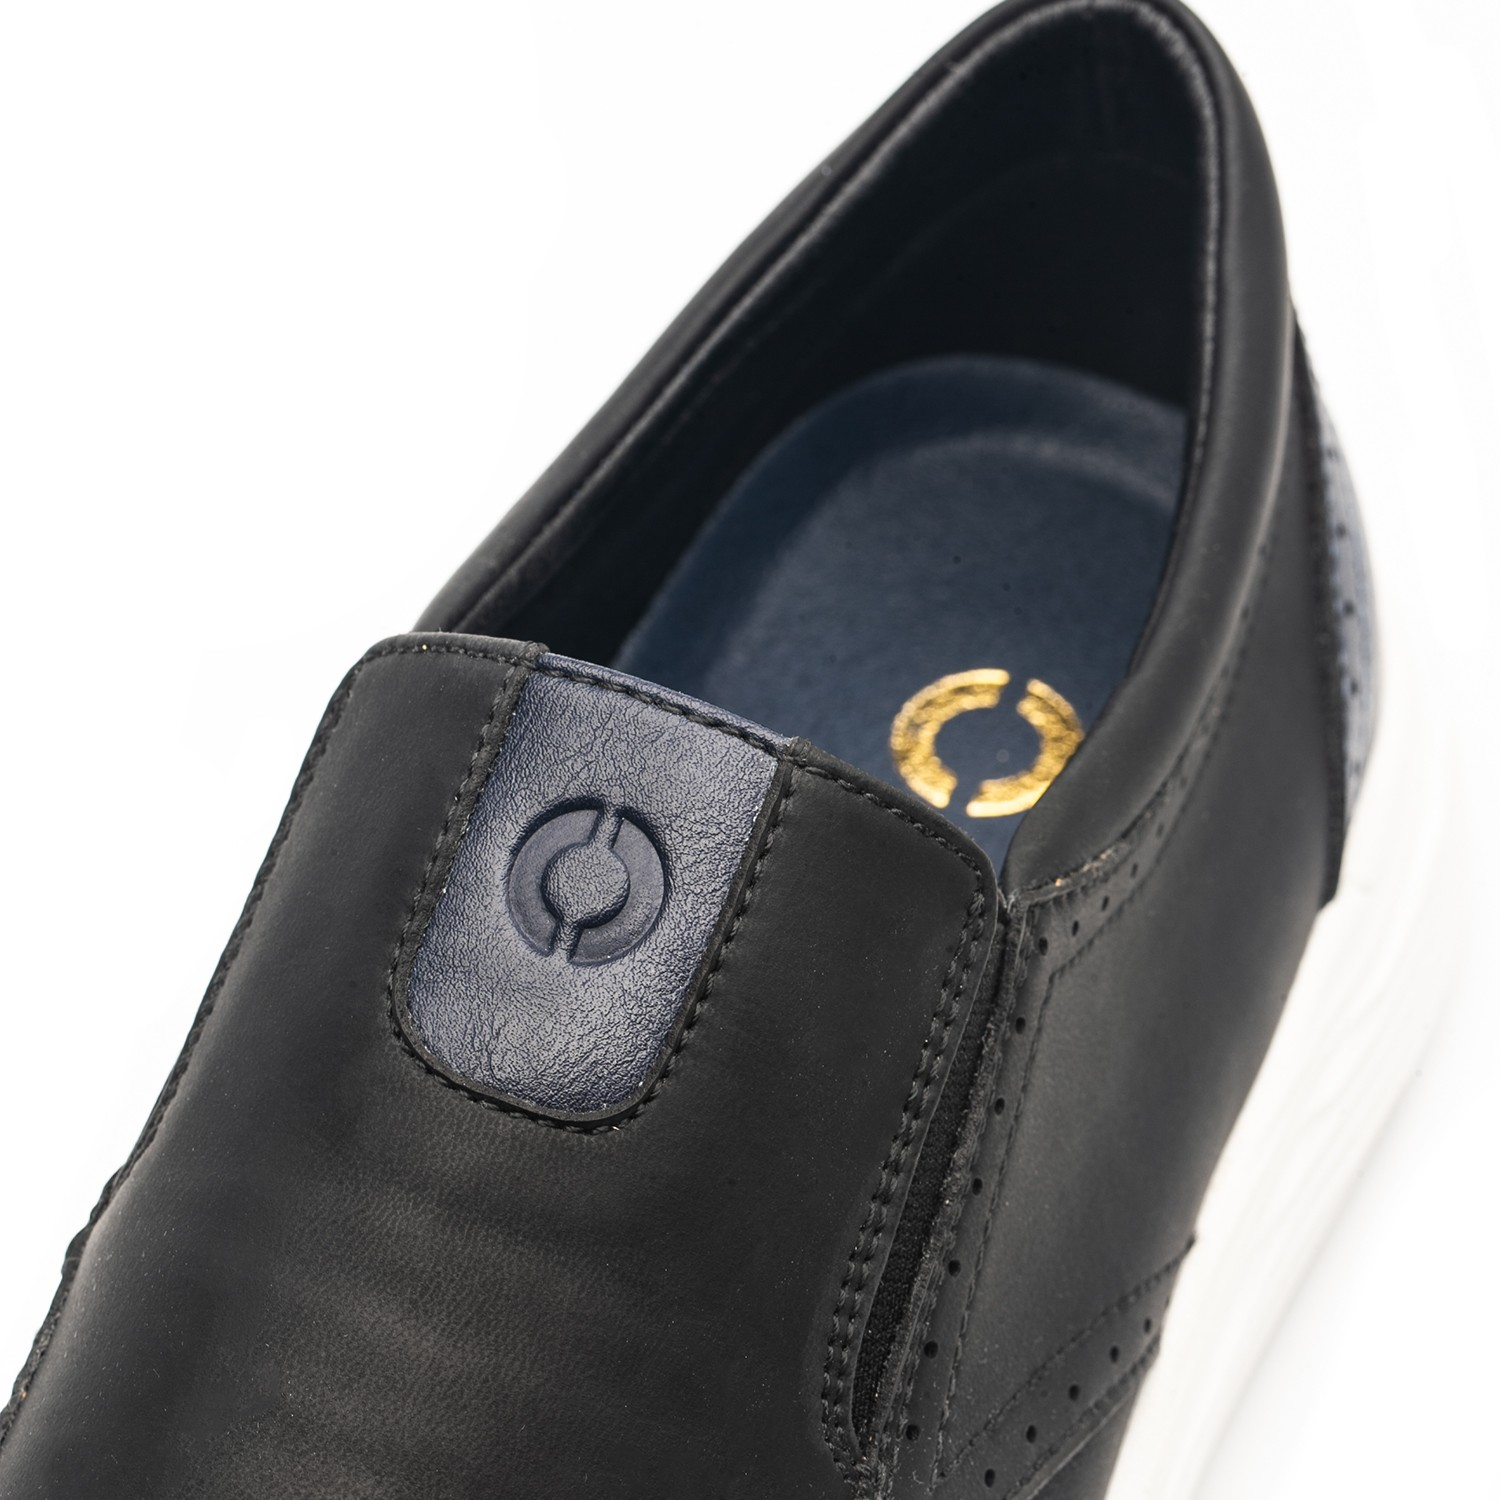 Omine M19010 Men Casual Leather Shoes - Black US 15